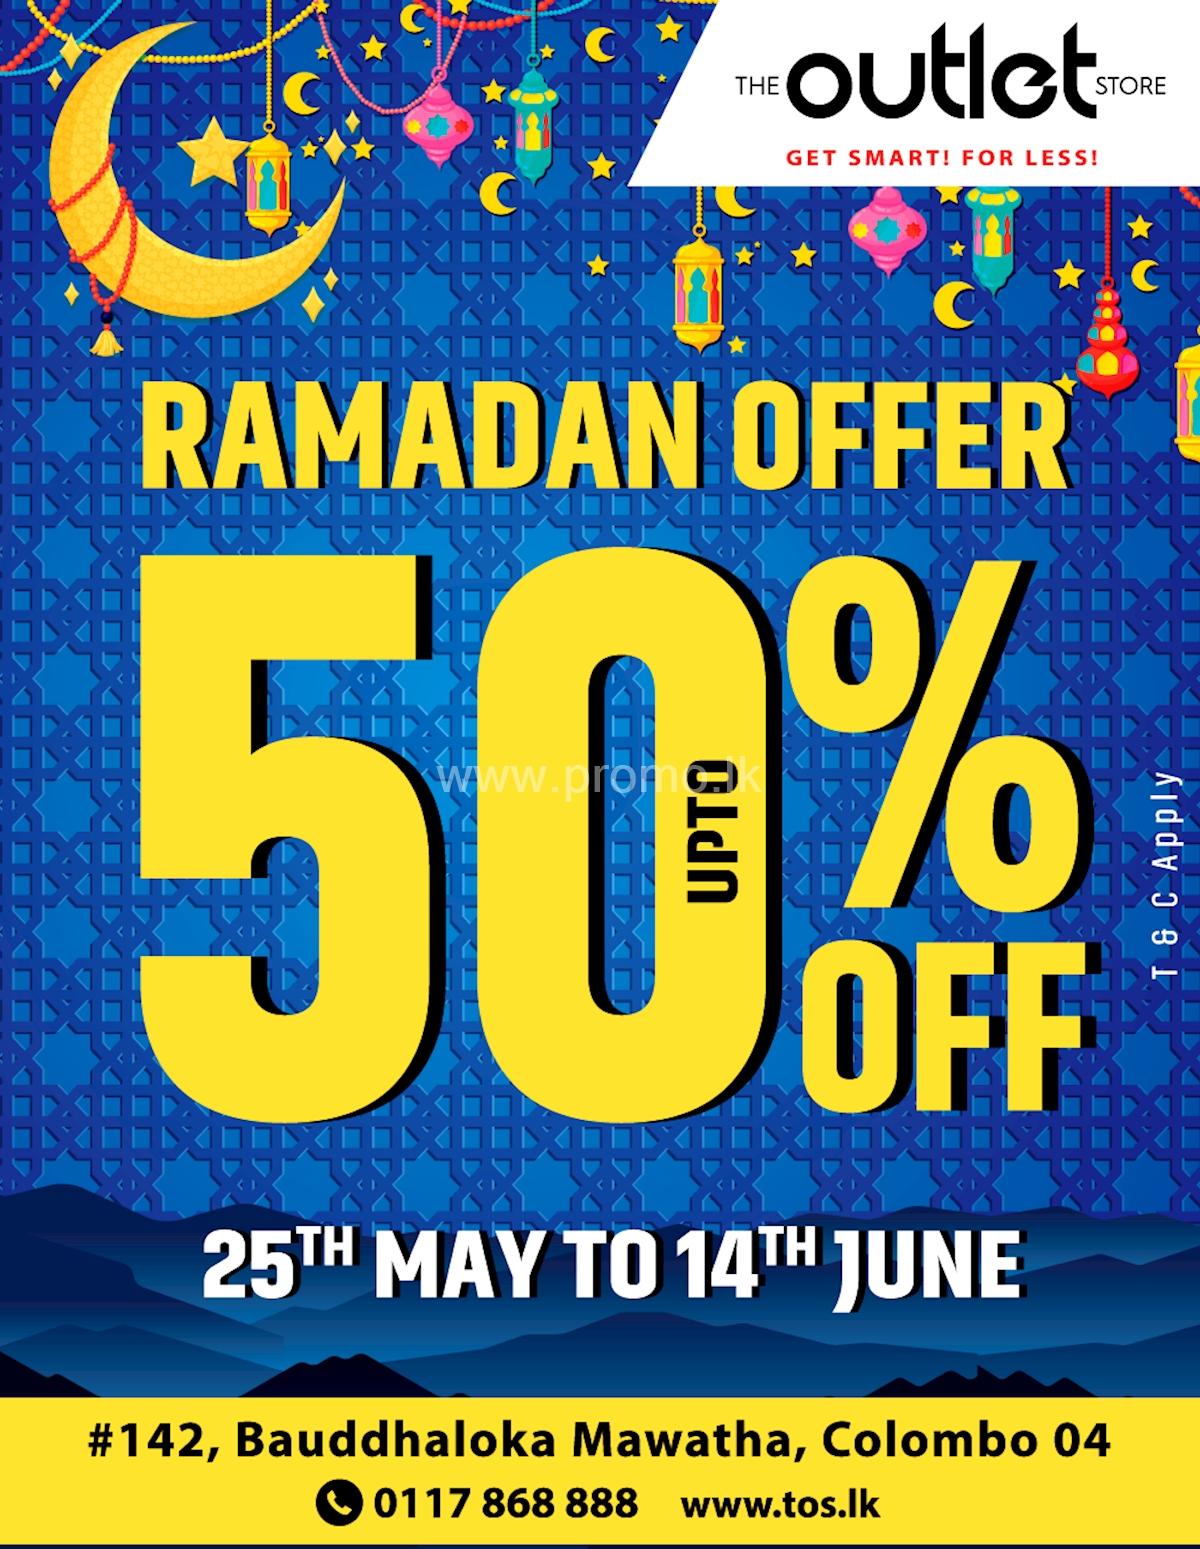 0c30adb9836a0c Ramadan Offer for upto 50% off at The Outlet Store